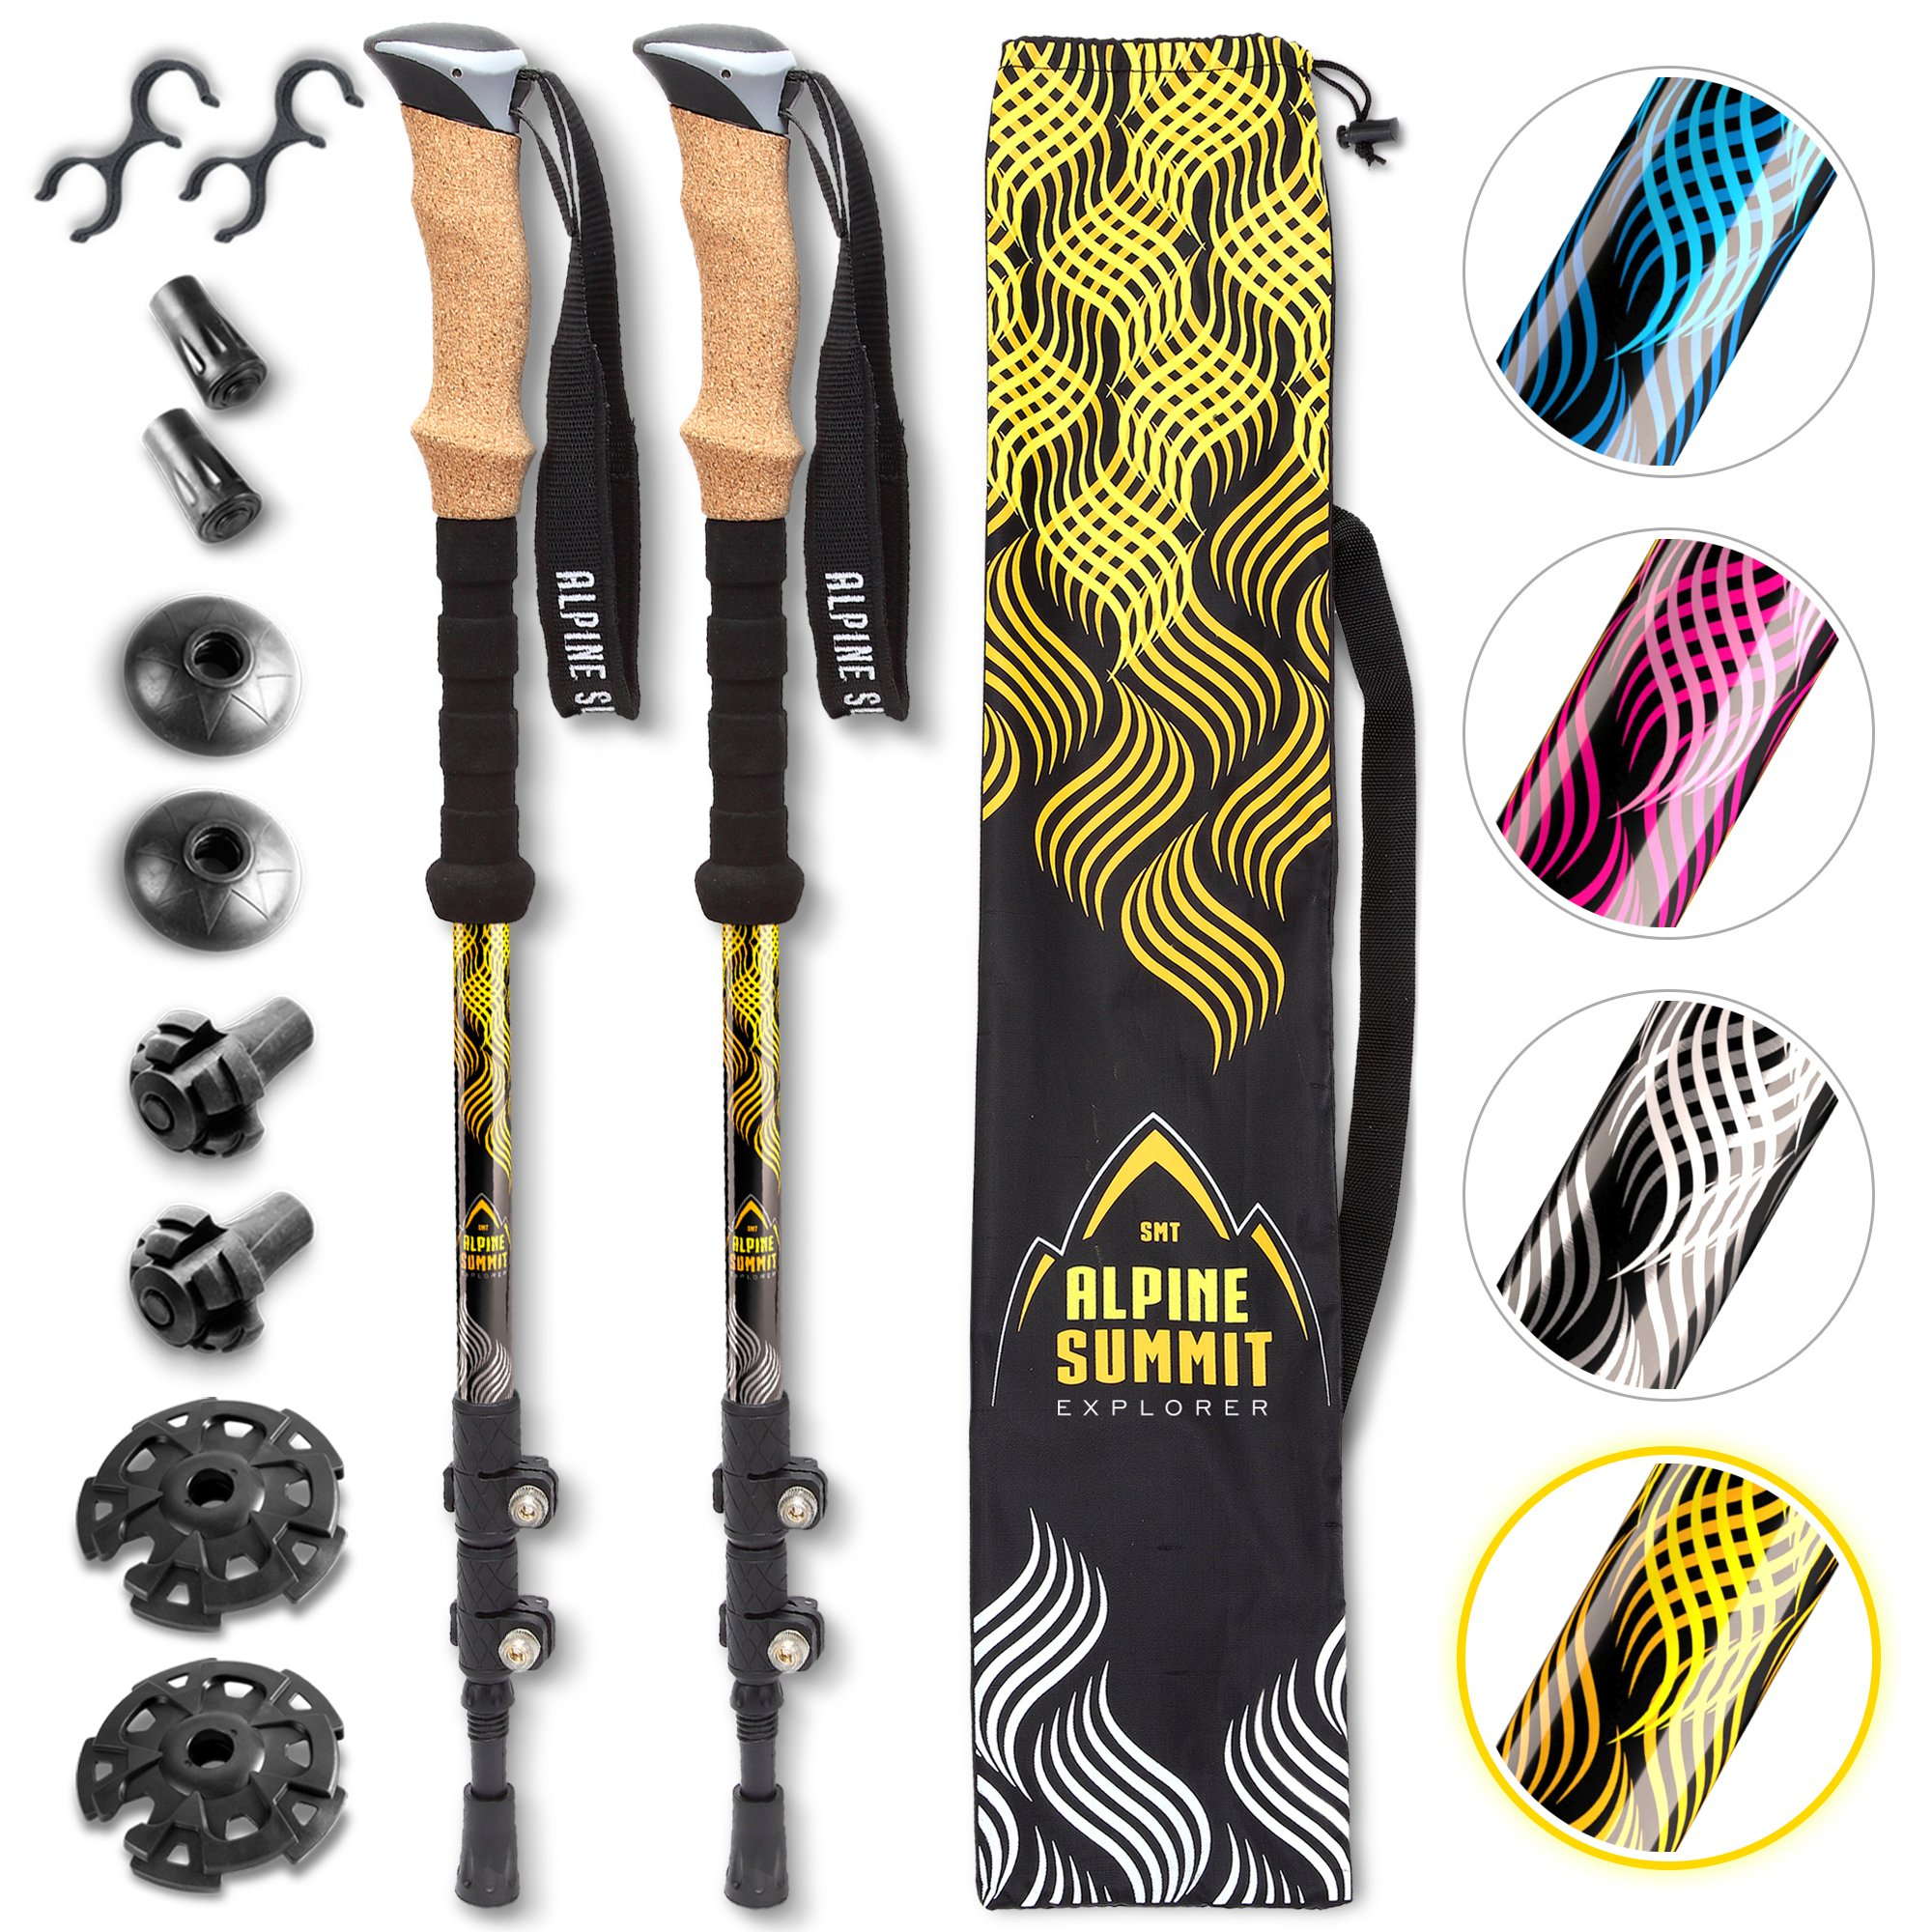 Power Lock Hiking/Trekking Poles [Pair] - Reliable, Durable Support - Light and Sturdy 7075 Aluminum with Durable Carbide Tips and Cork Grips - Walking Sticks